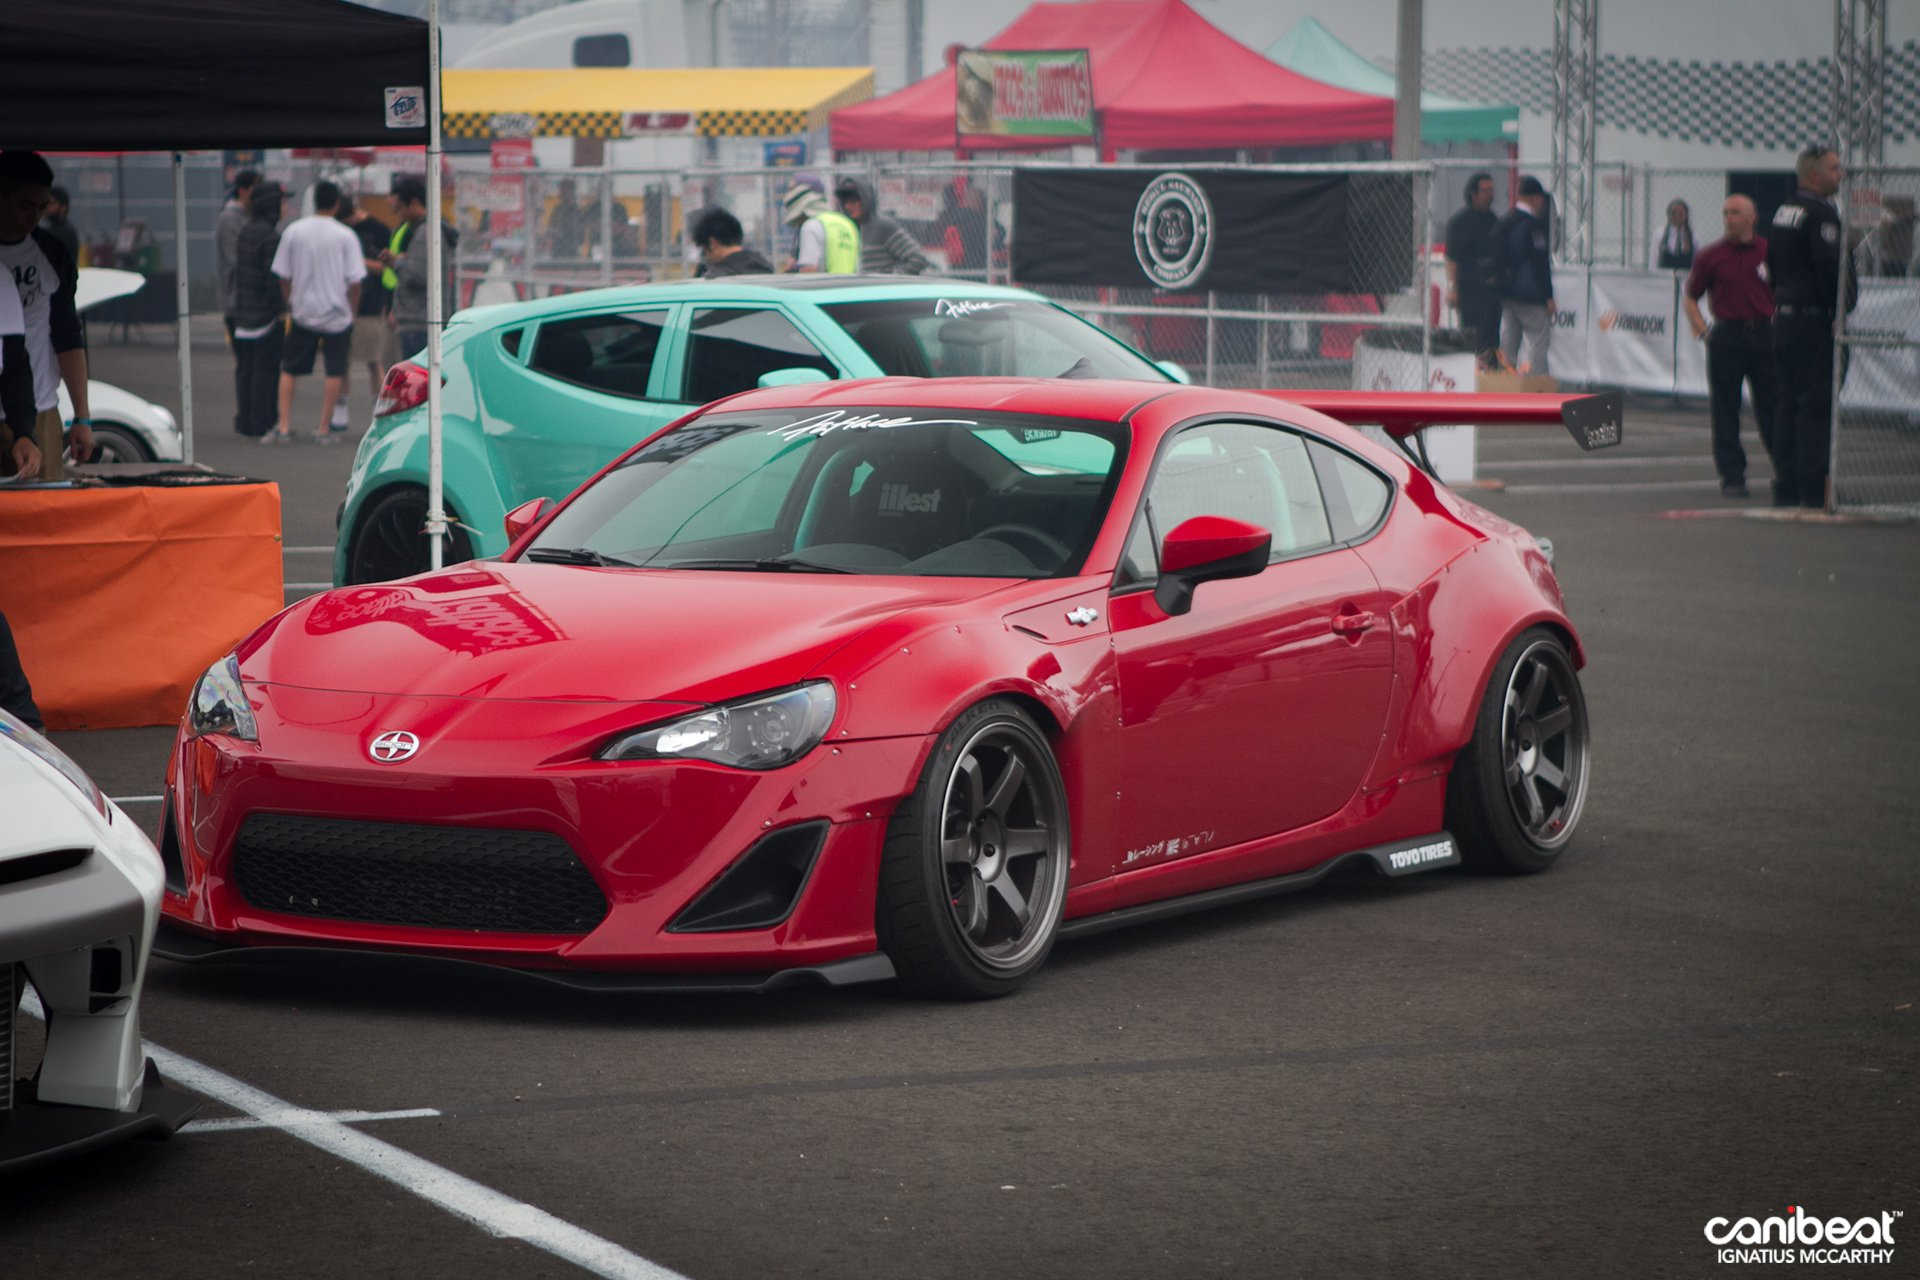 Toyota-gt86 scion-FRS subaru-BRZ coupe tuning cars japan ...